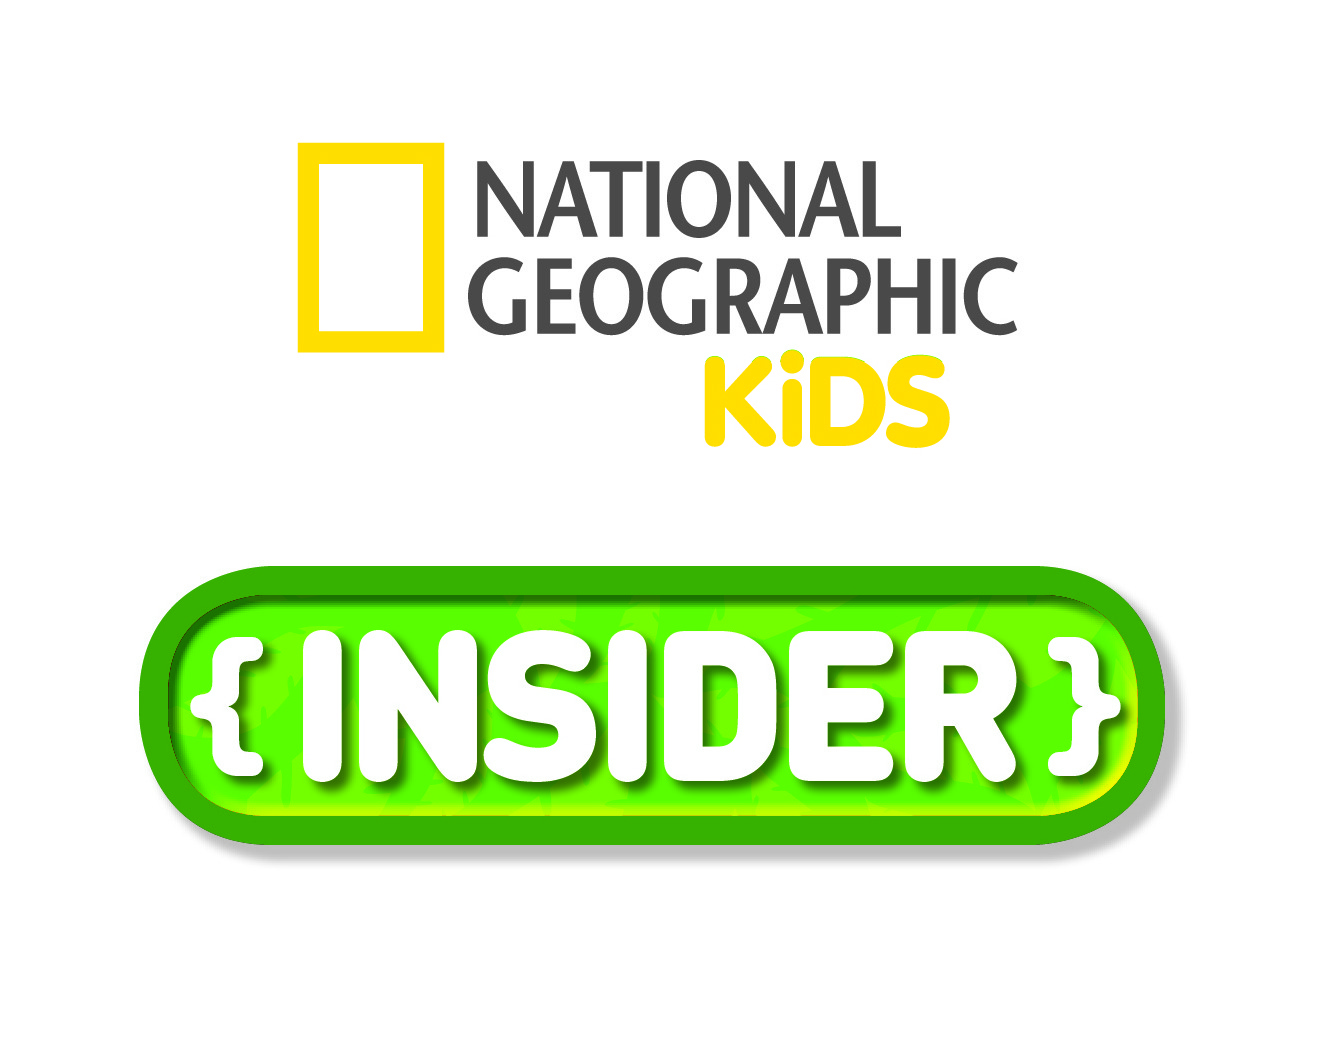 National Geographic Kids Insider logo